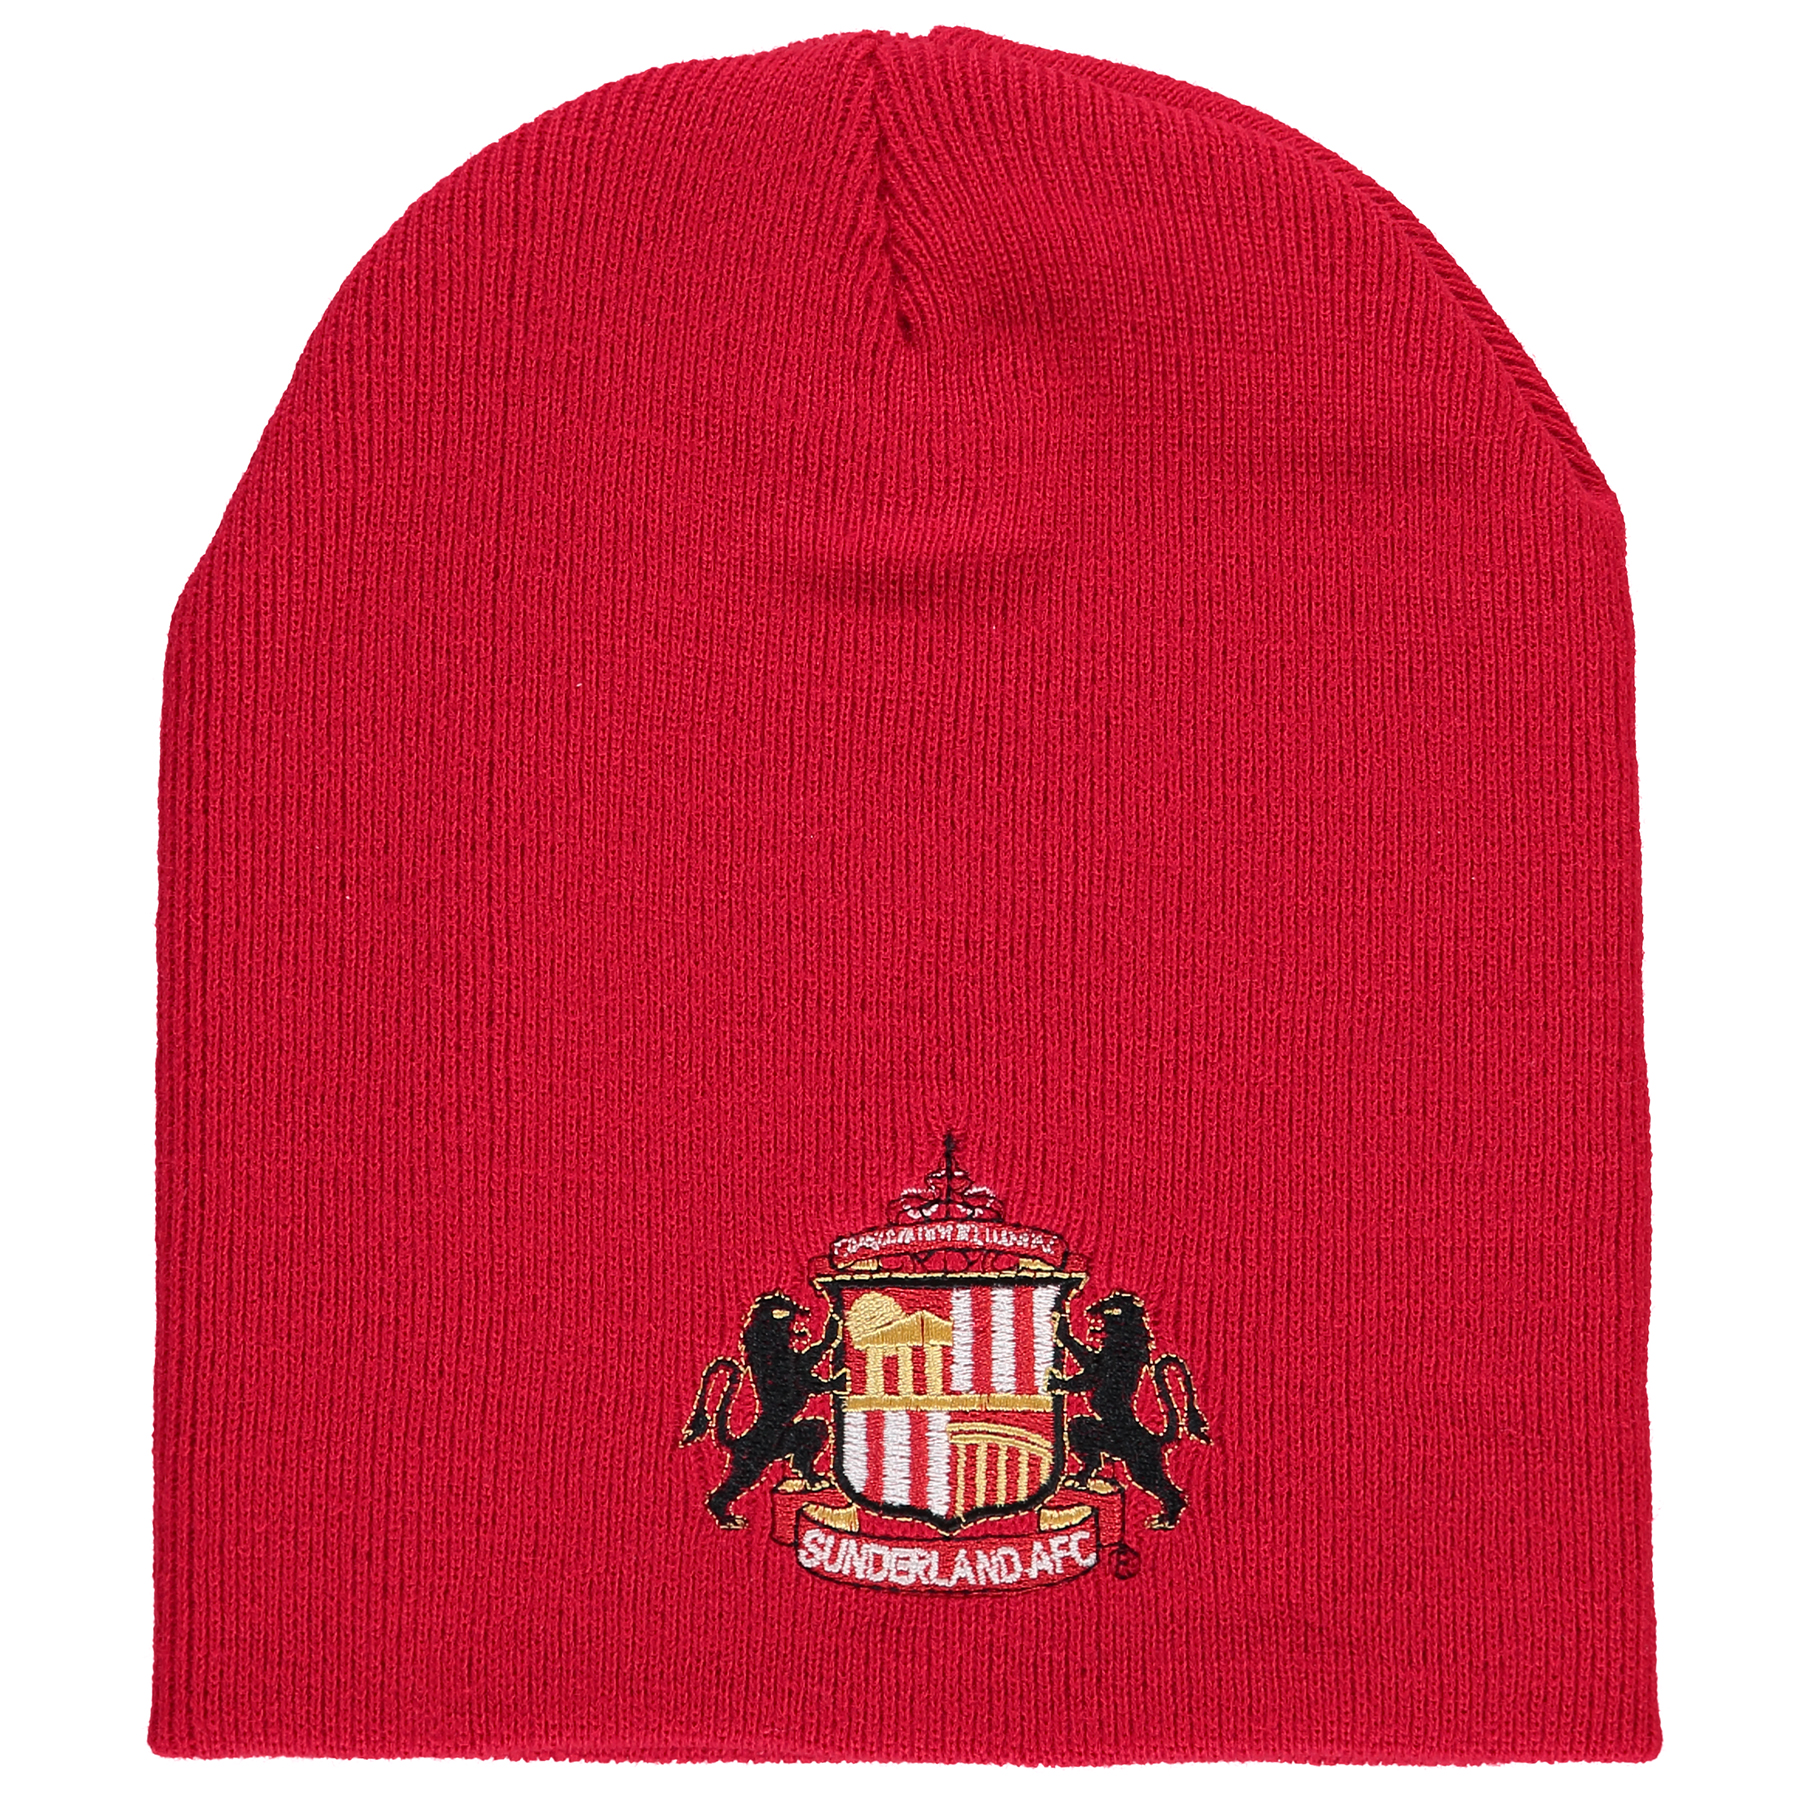 Sunderland Beanie Hat - Red - Junior